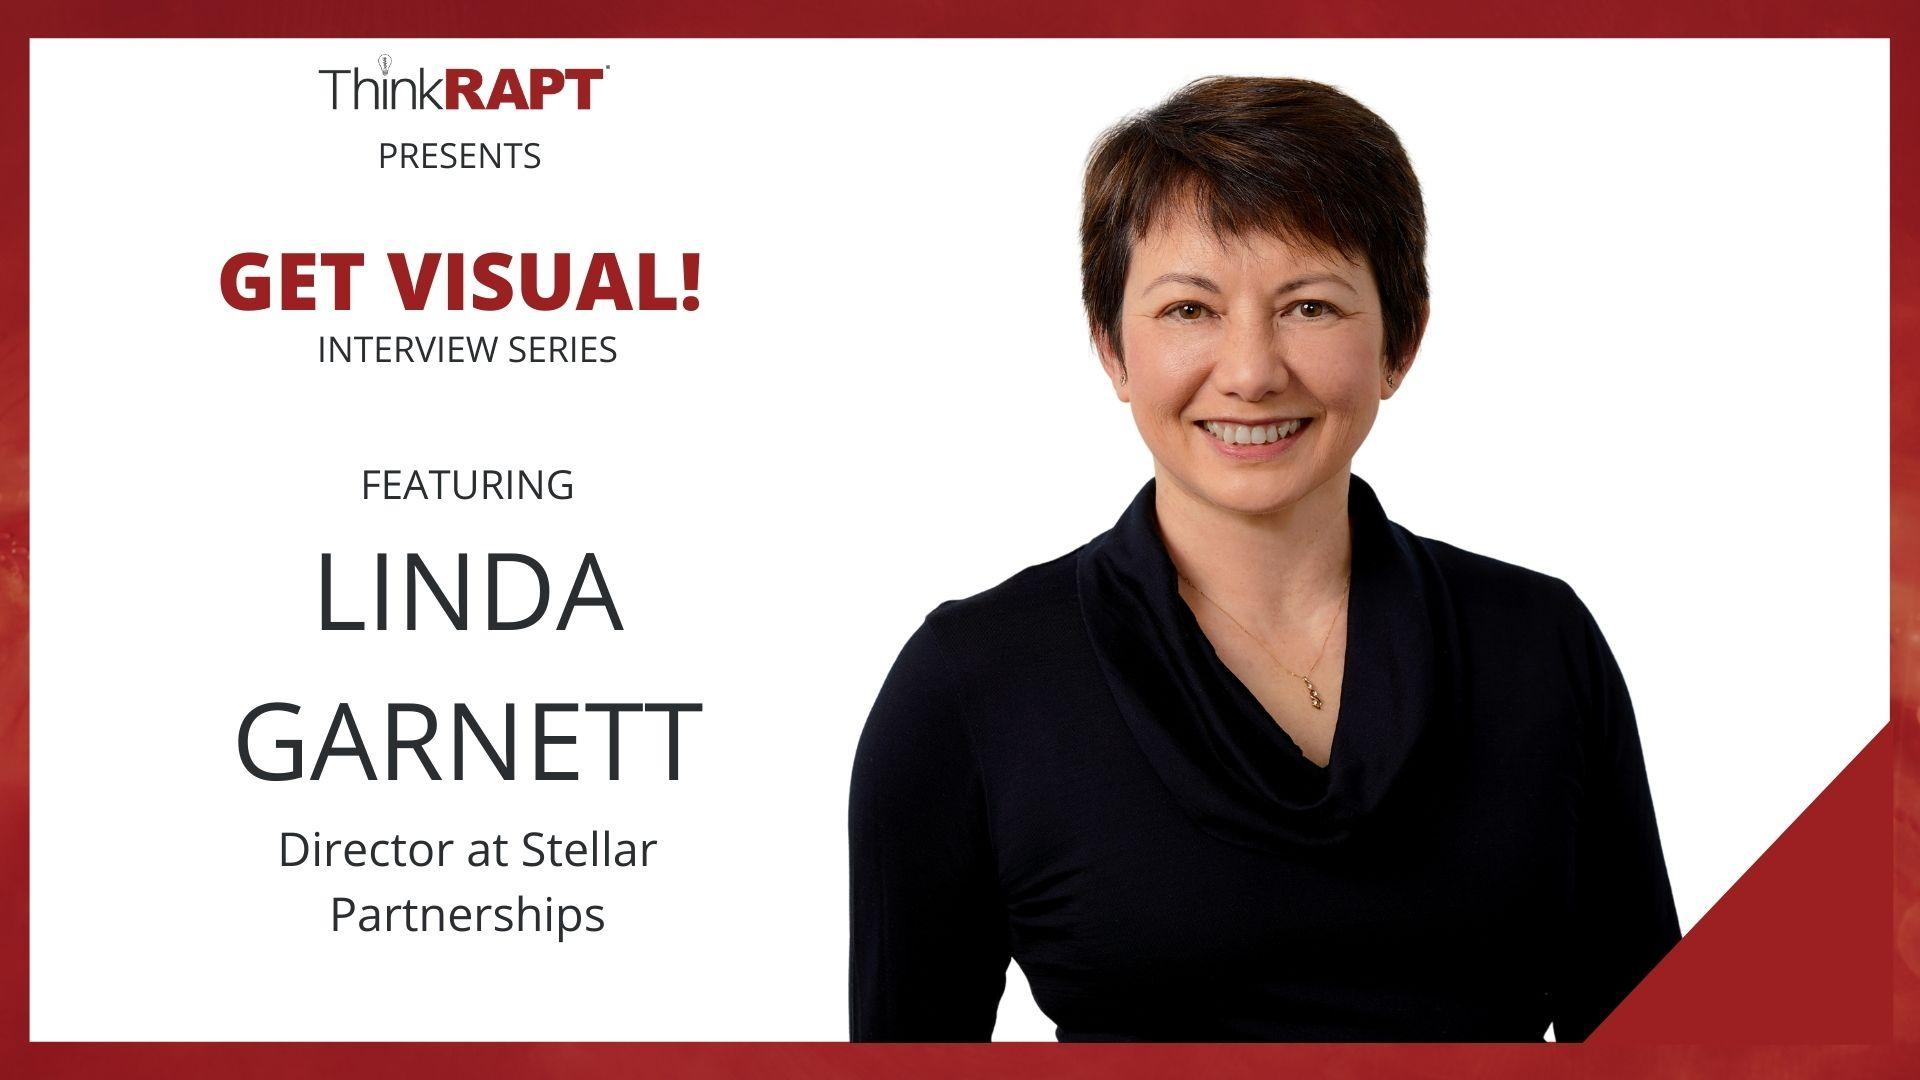 A woman with short dark hair and black top looks out at the camera. The words next to her read Think RAPT presents Get Visual! Interview Series Featuring Linda Garnett Founder of Stellar Partnerships